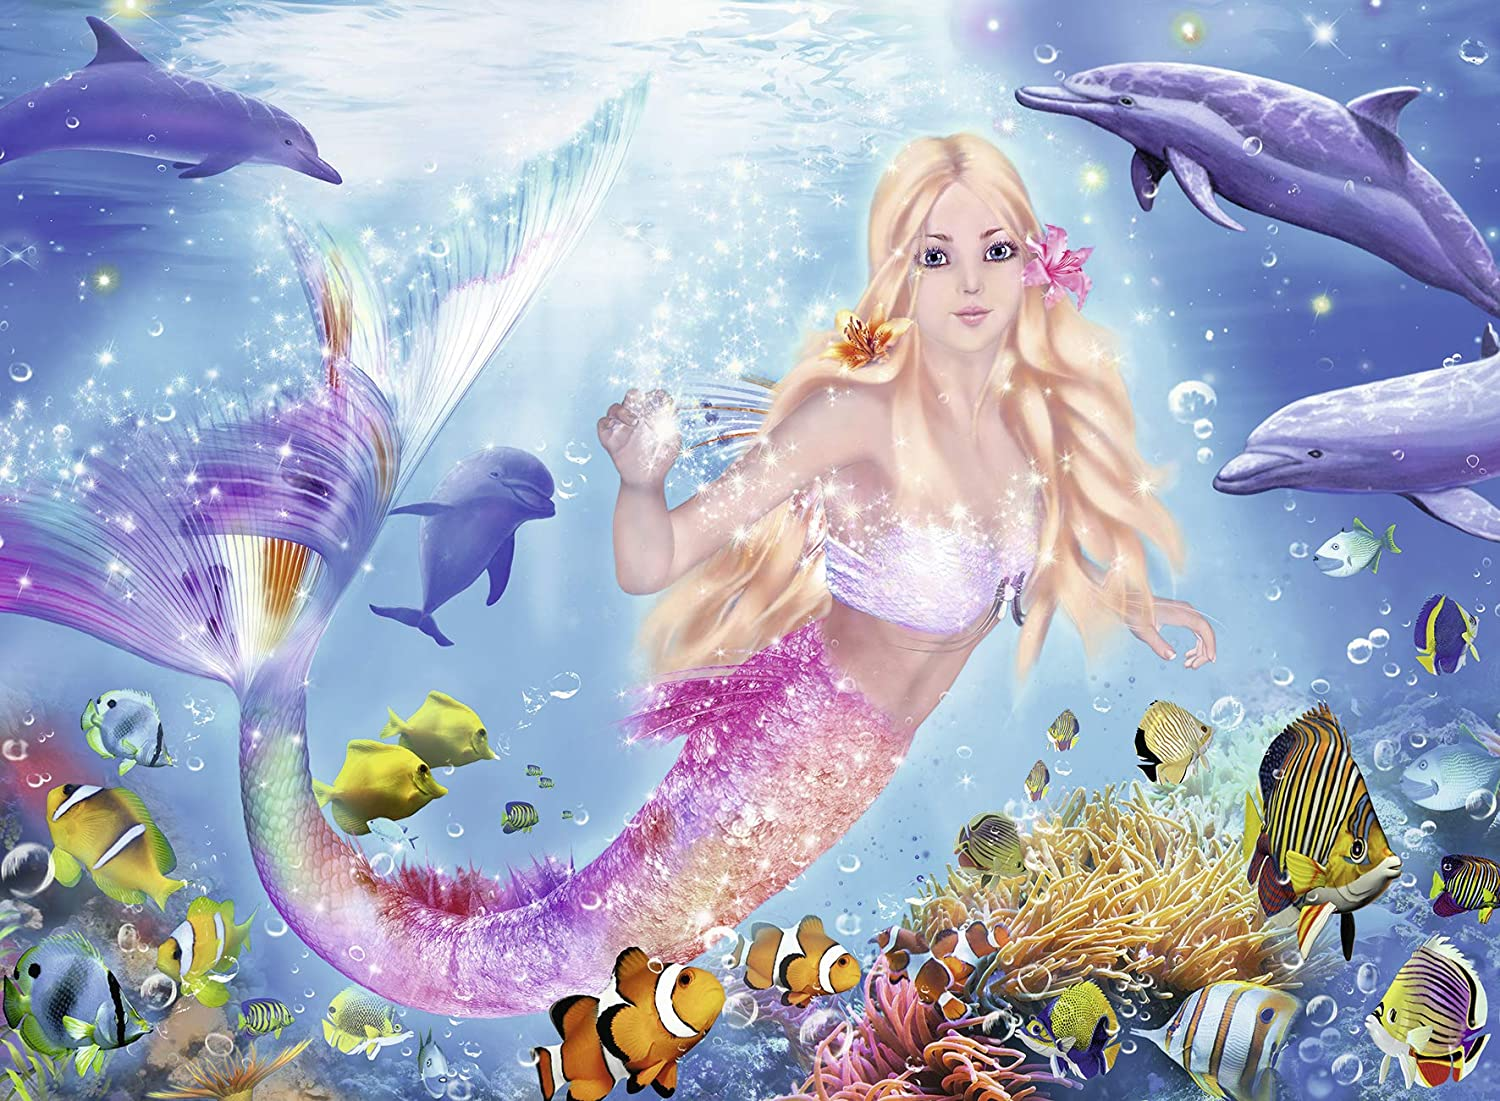 Pieces Fit Together Perfectly 13642 Ravensburger Mermaid and Dolphins Glitter 100 Piece Jigsaw Puzzle for Kids Every Piece is Unique